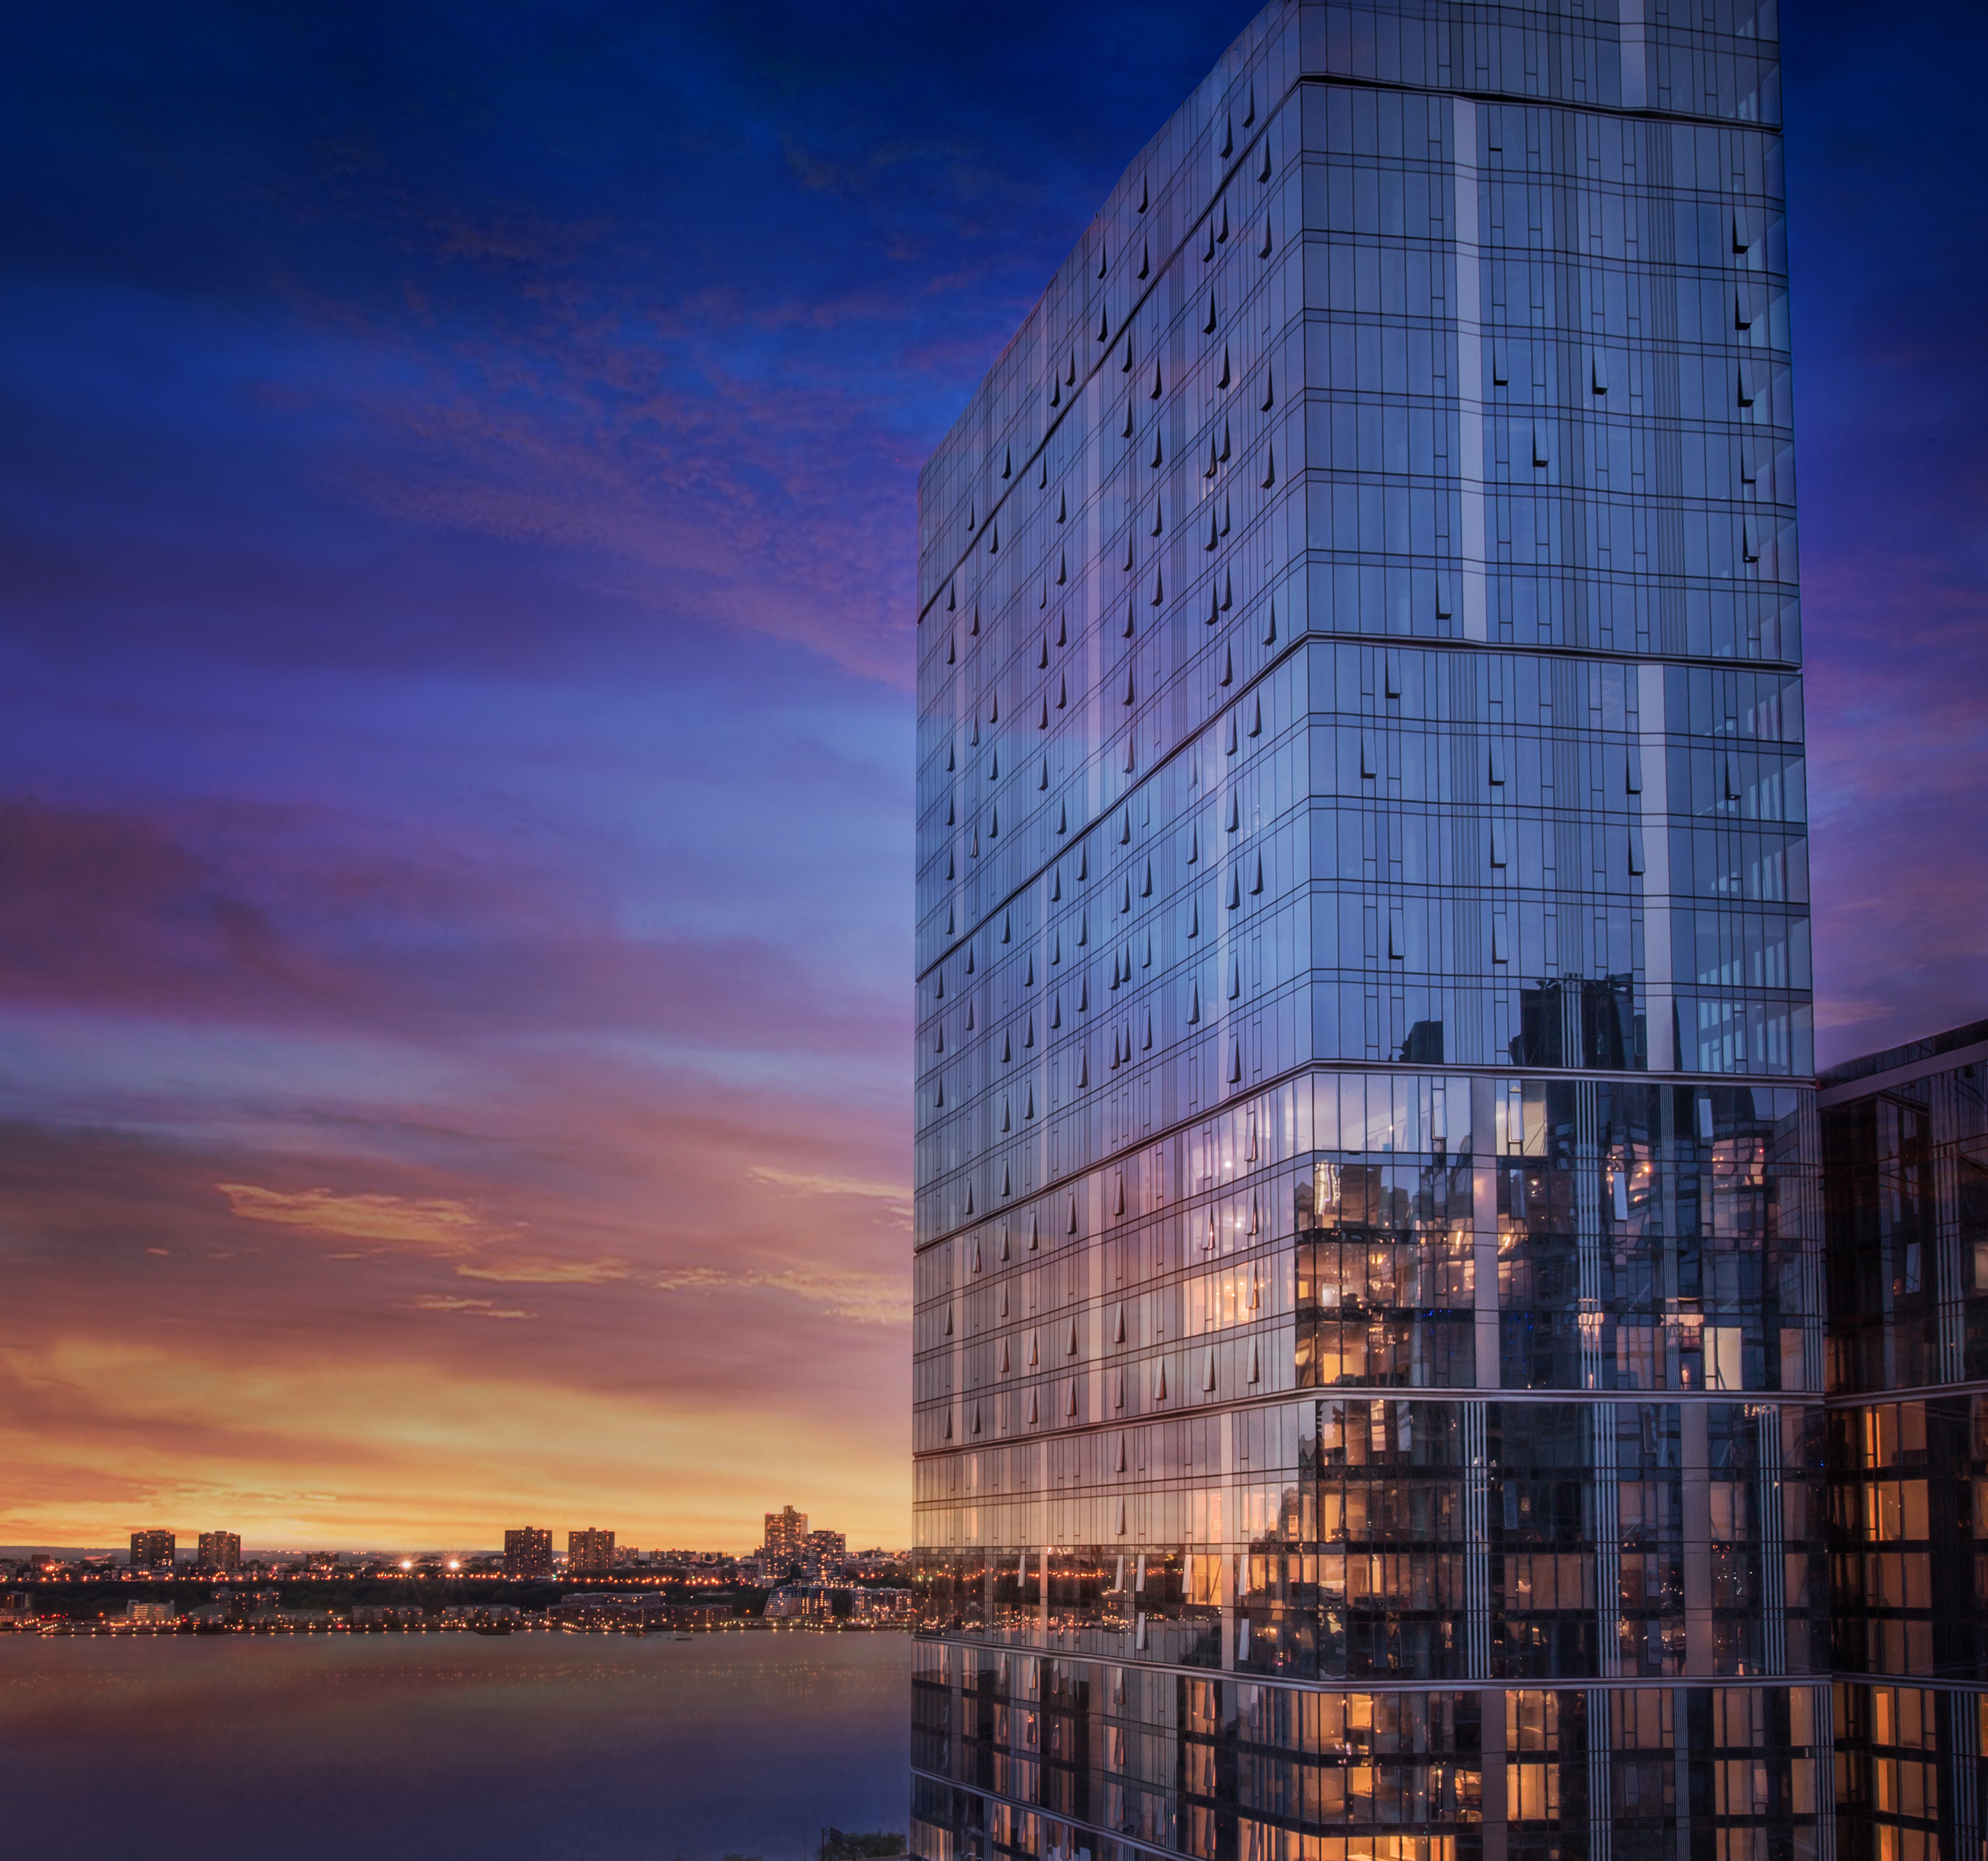 A tall building with a glass facade. There is a colorful sunset in the sky.